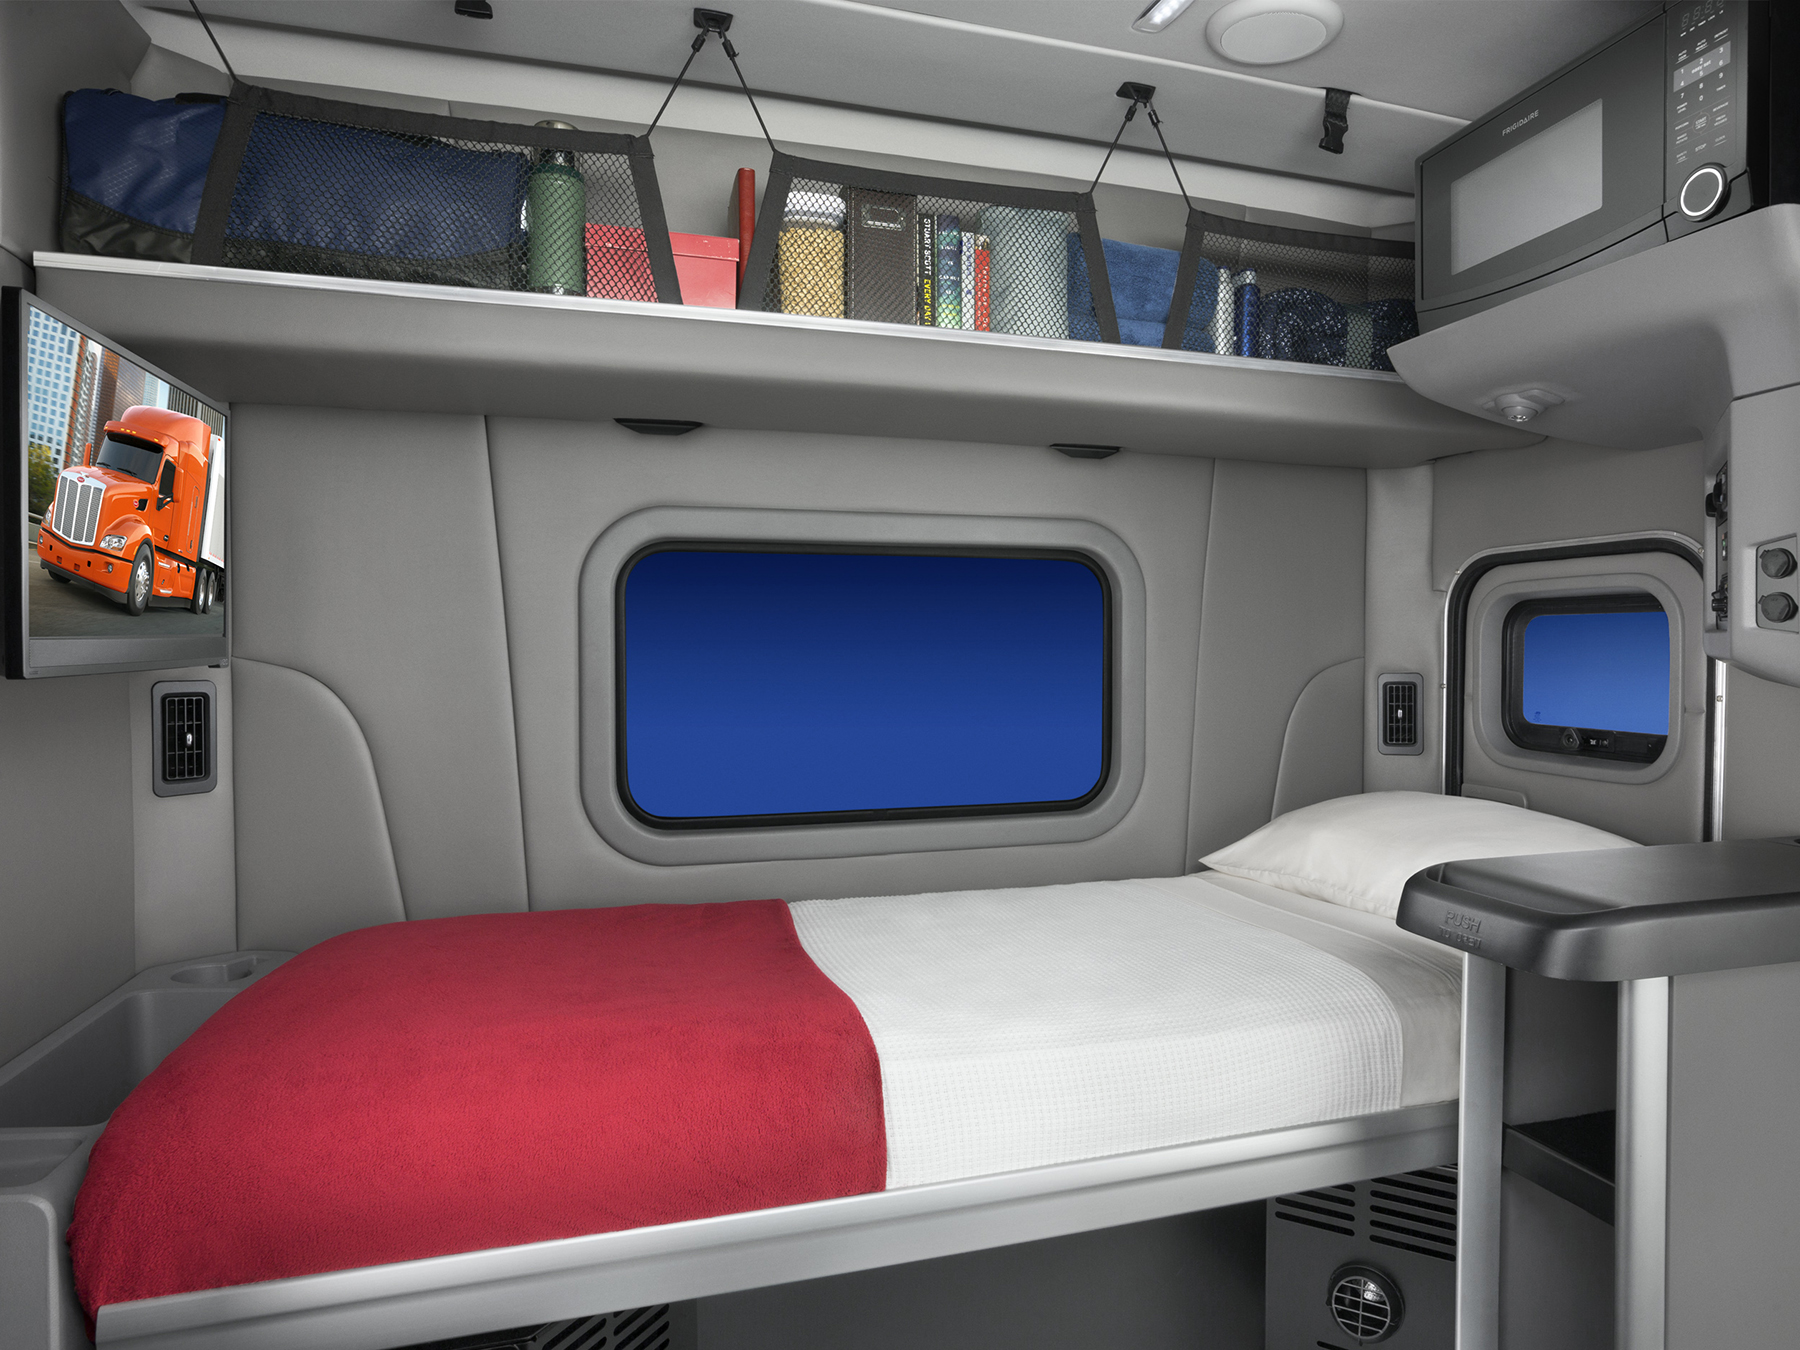 Peterbilt to soon release 58 inch sleeper truck news for Camion americain interieur cabine